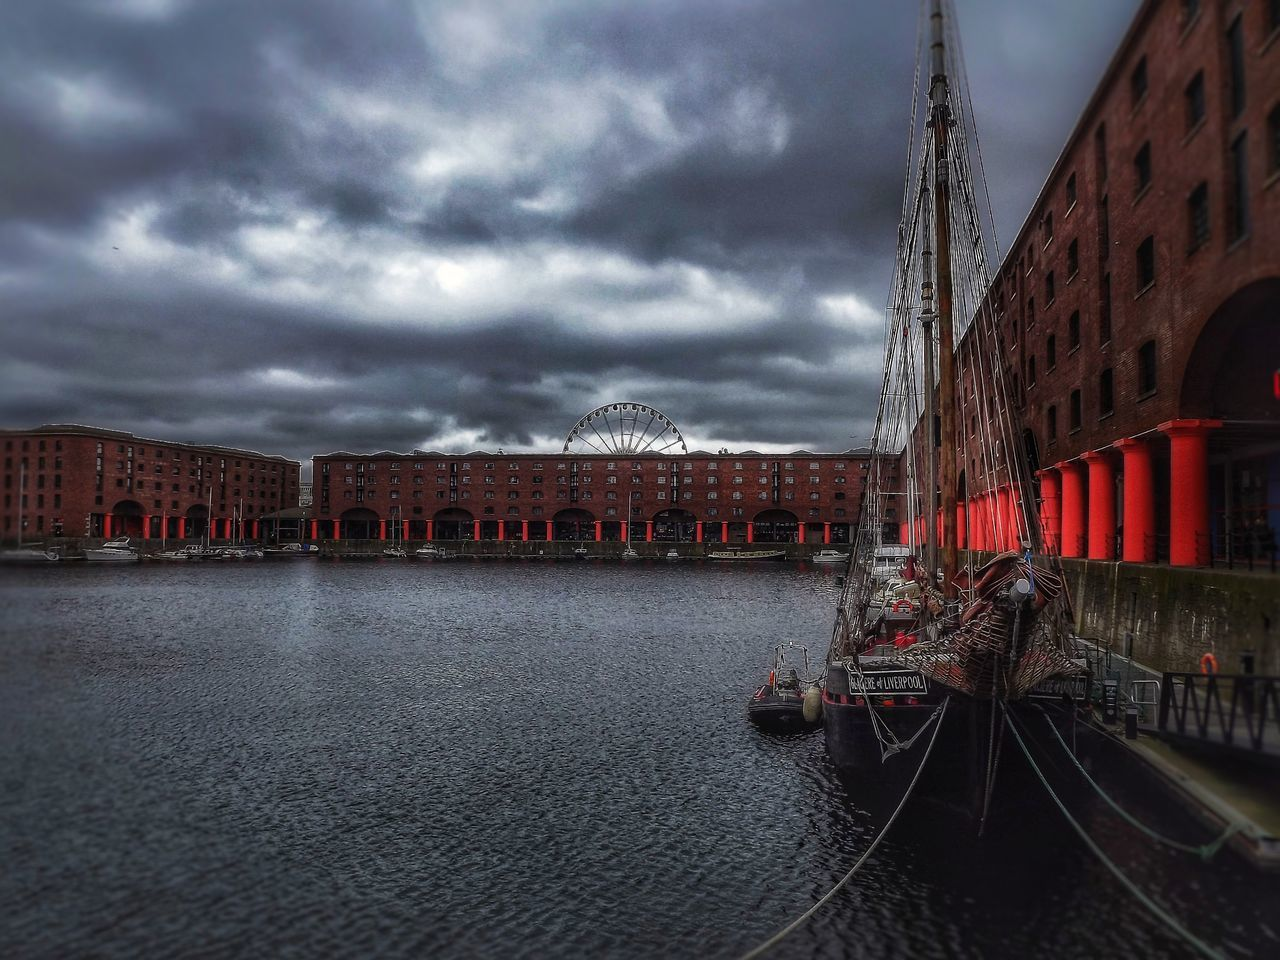 Albert Dock Liverpool on a very cloudy day Cloud - Sky Illuminated Storm Cloud Dramatic Sky EyeEm Masterclass Fujifilm Malephotographerofthemonth Creative Light And Shadow Portrait Photography The World Through My Eyes Buildings,style,arquitecture,sky Buildings Architecture Albert Docks Liverpool Albert Docks Liverpool Skyline Tallship Liverpool, England